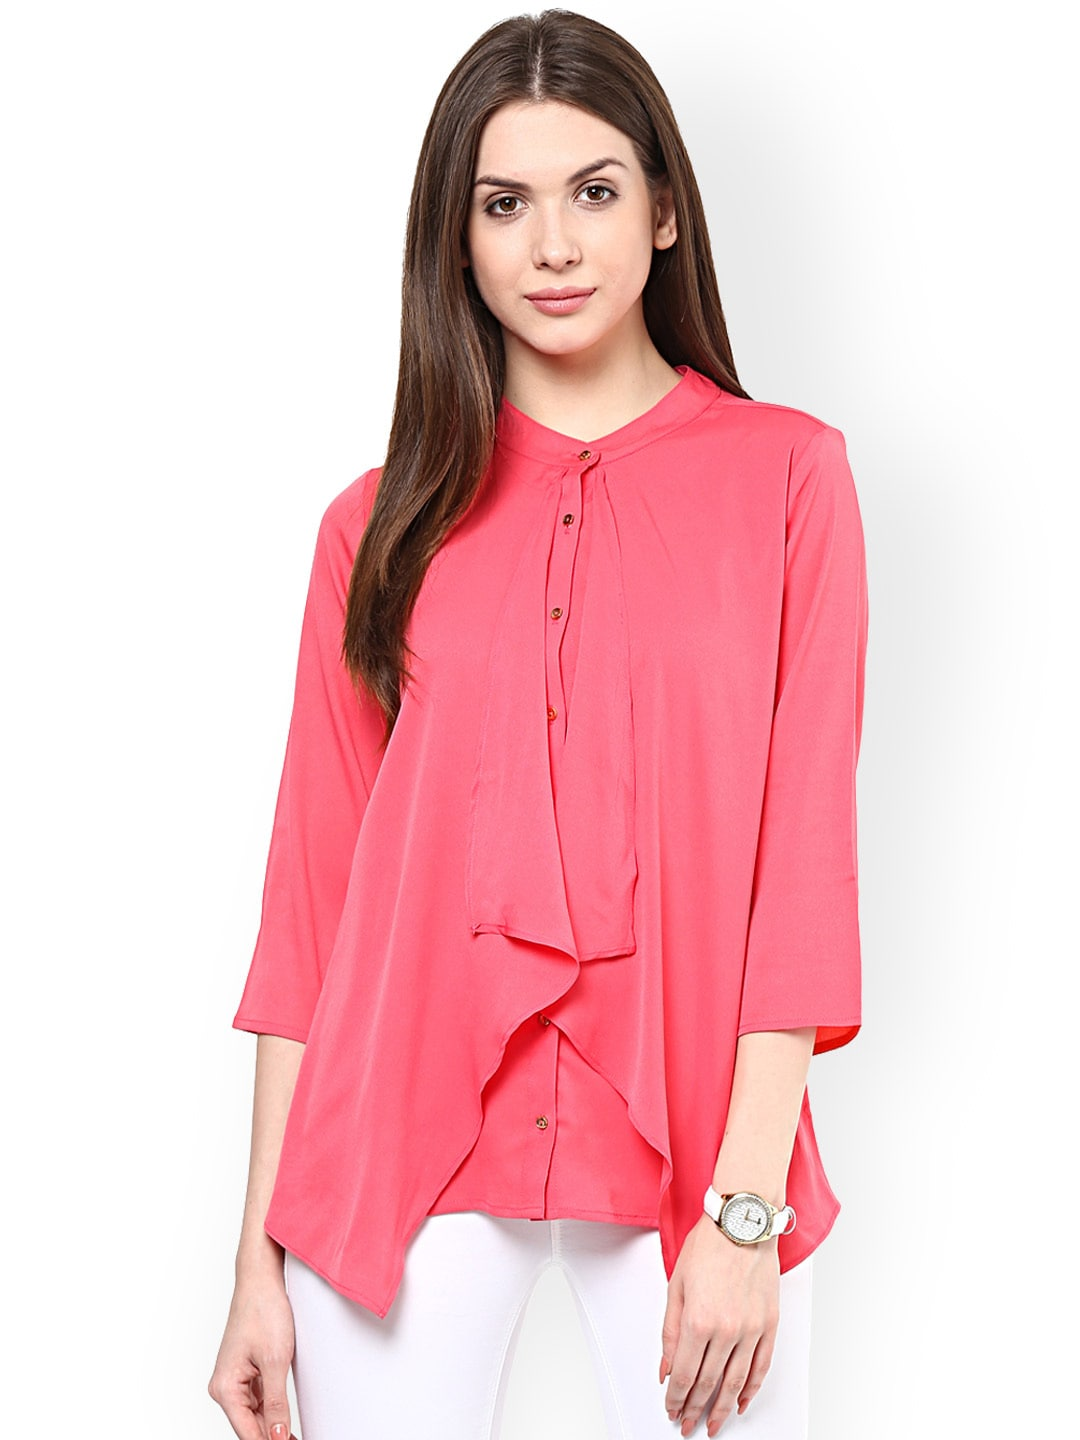 8f12d3c1ee1a68 Cut Sleeve Tops - Buy Cut Sleeve Tops online in India